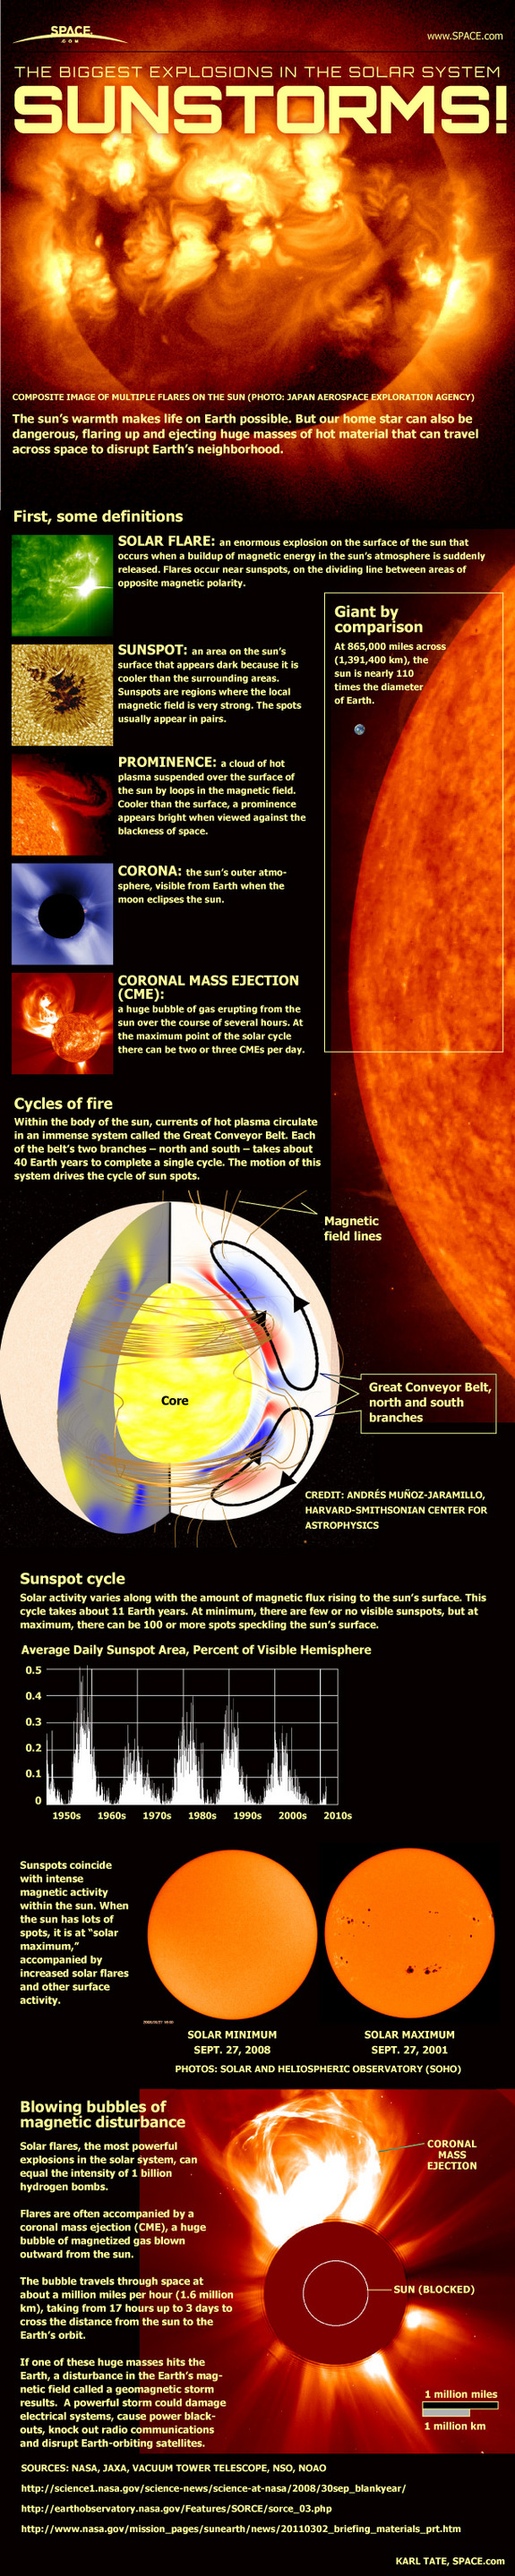 sun-flares-coronal-mass-ejection-infographic